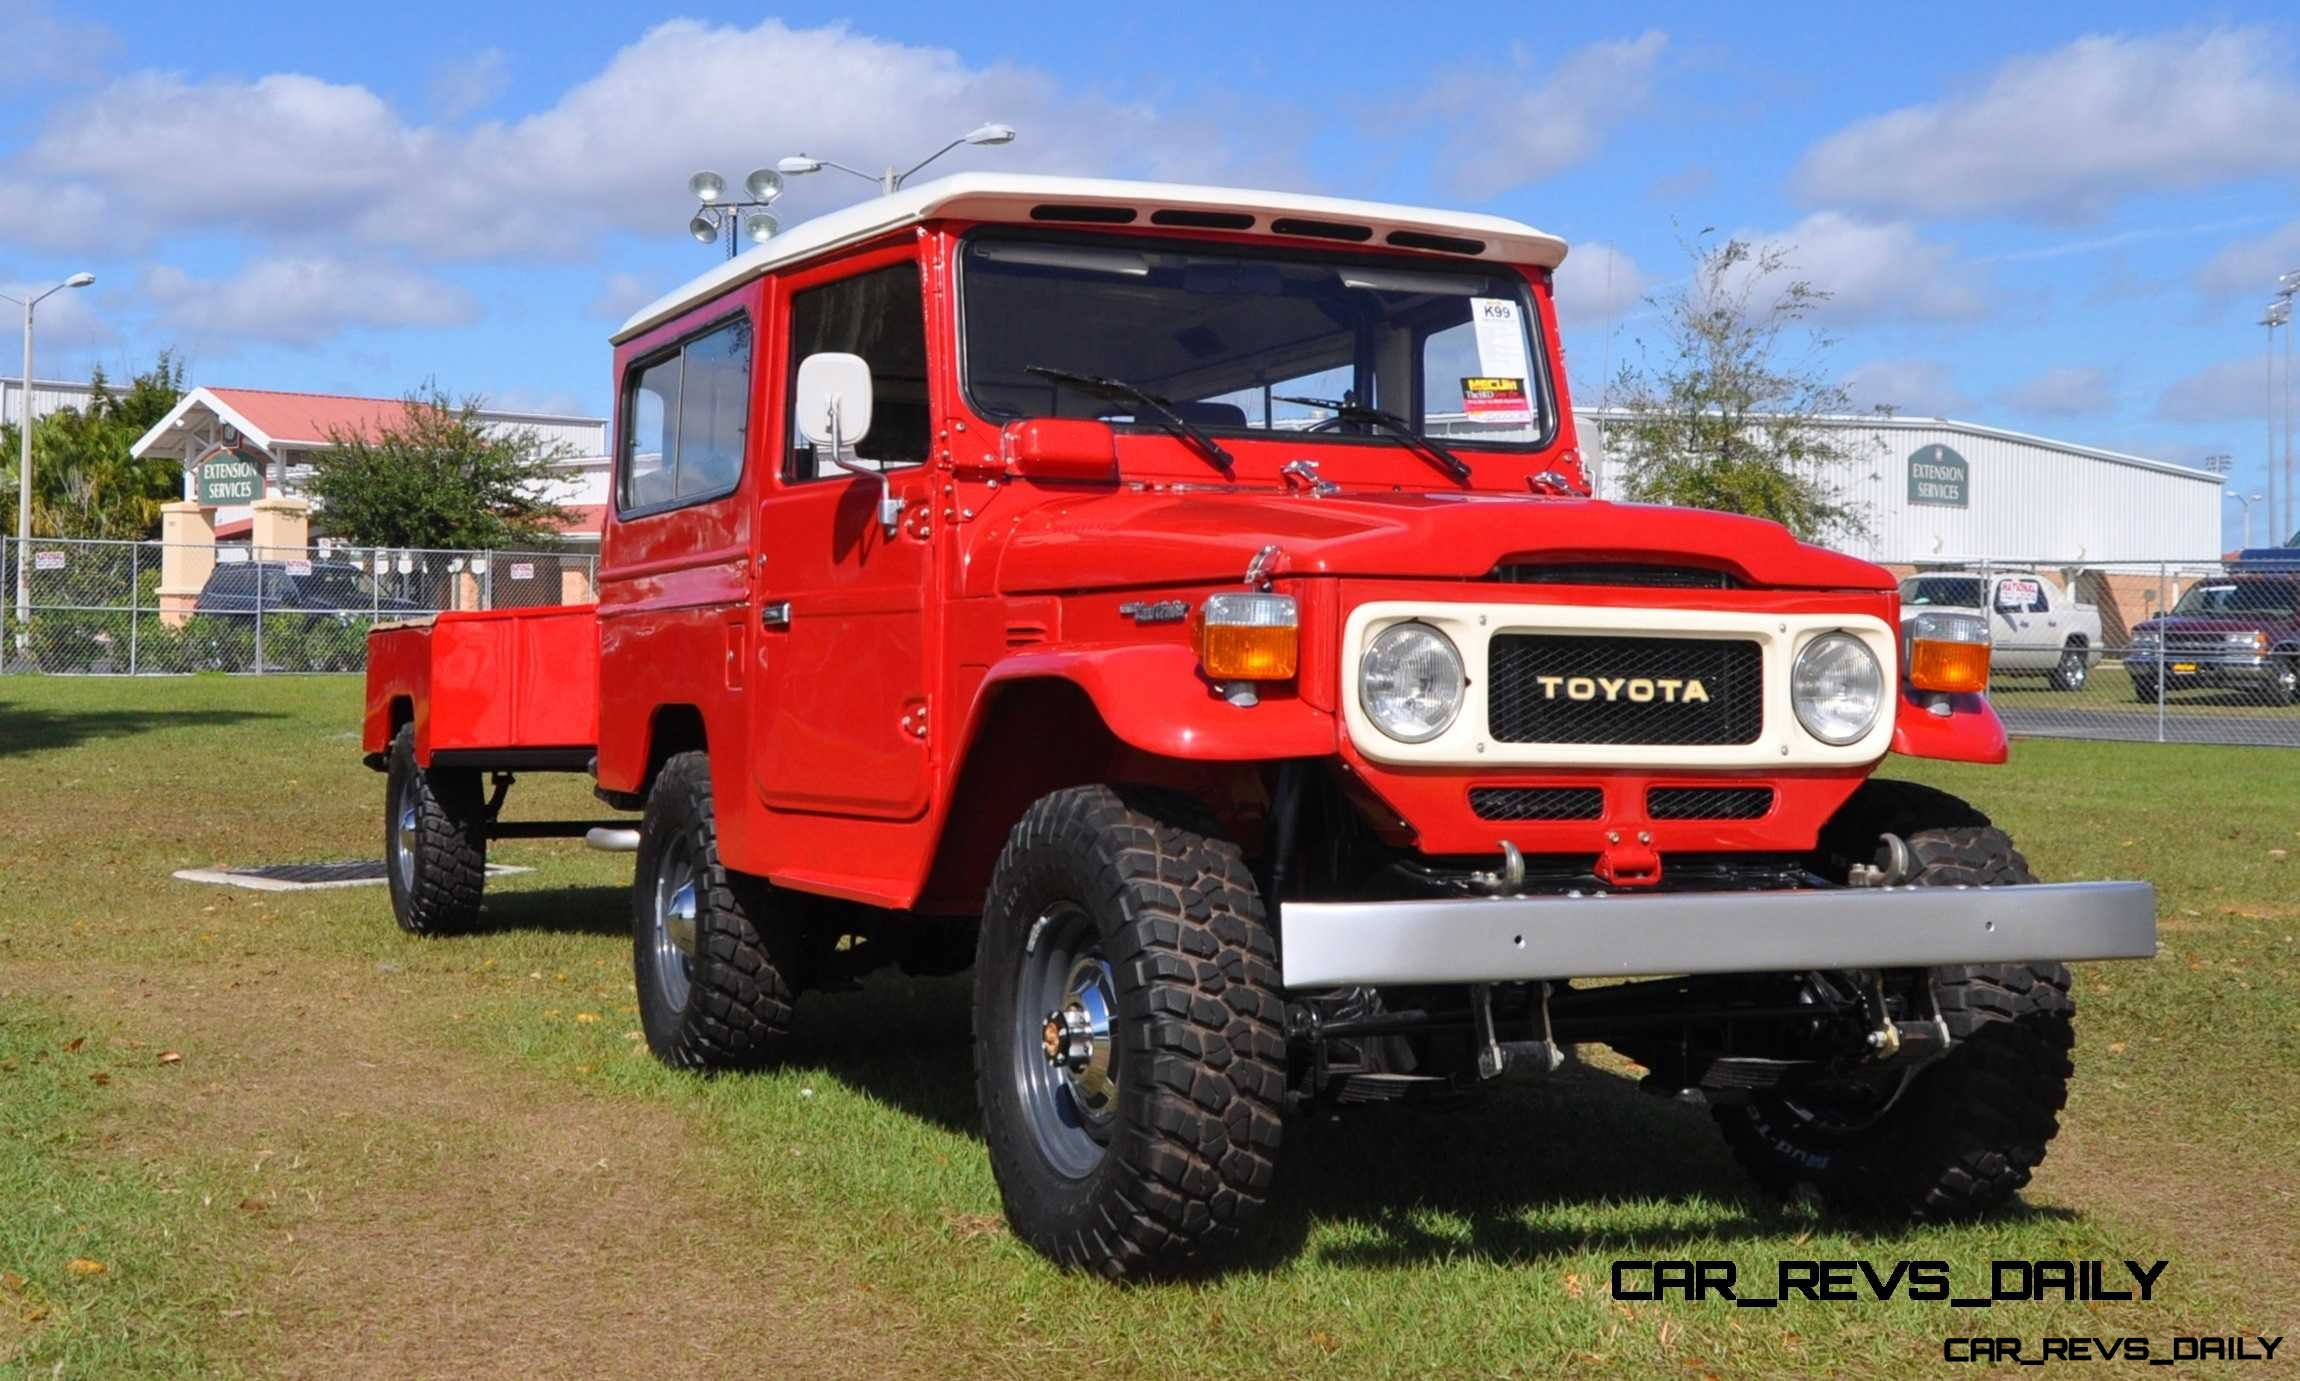 Mecum Florida 2015 Favorites - Toyota FJ40 Land Cruiser 1